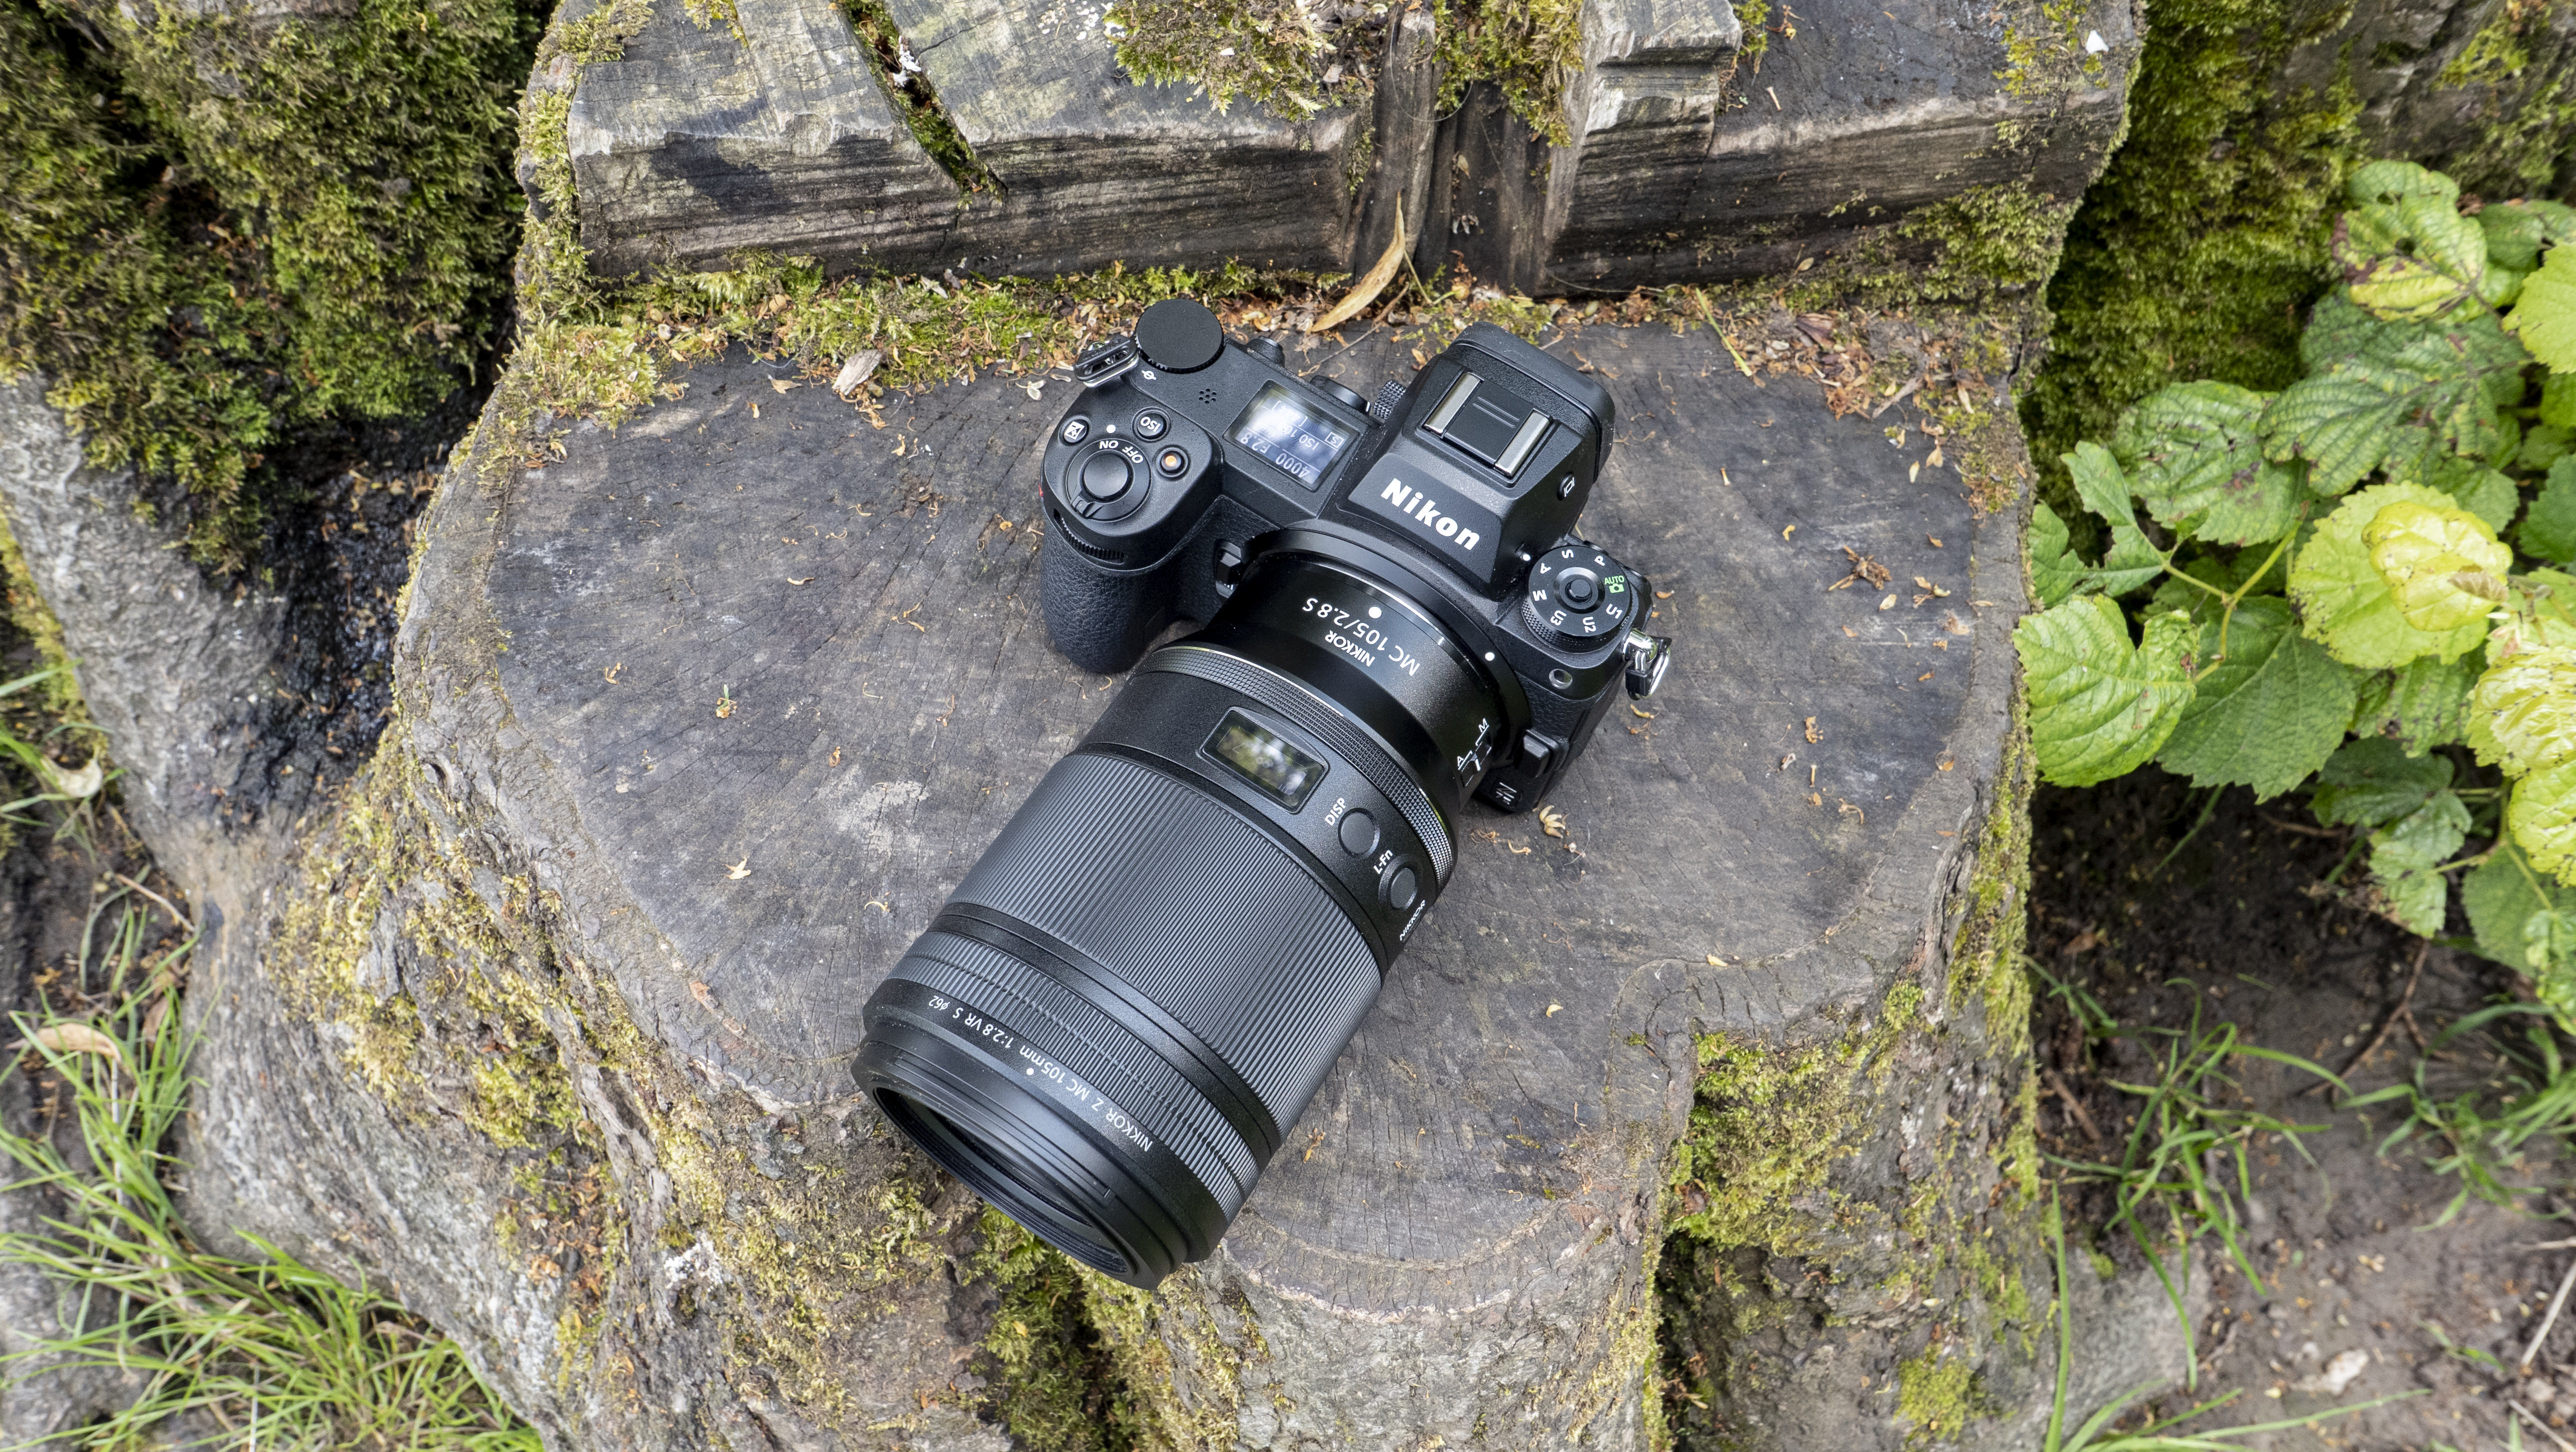 Top-down view of the Nikon Z7 II with a Nikon Nikkor Z MC 105mm f/2.8 VR S lens